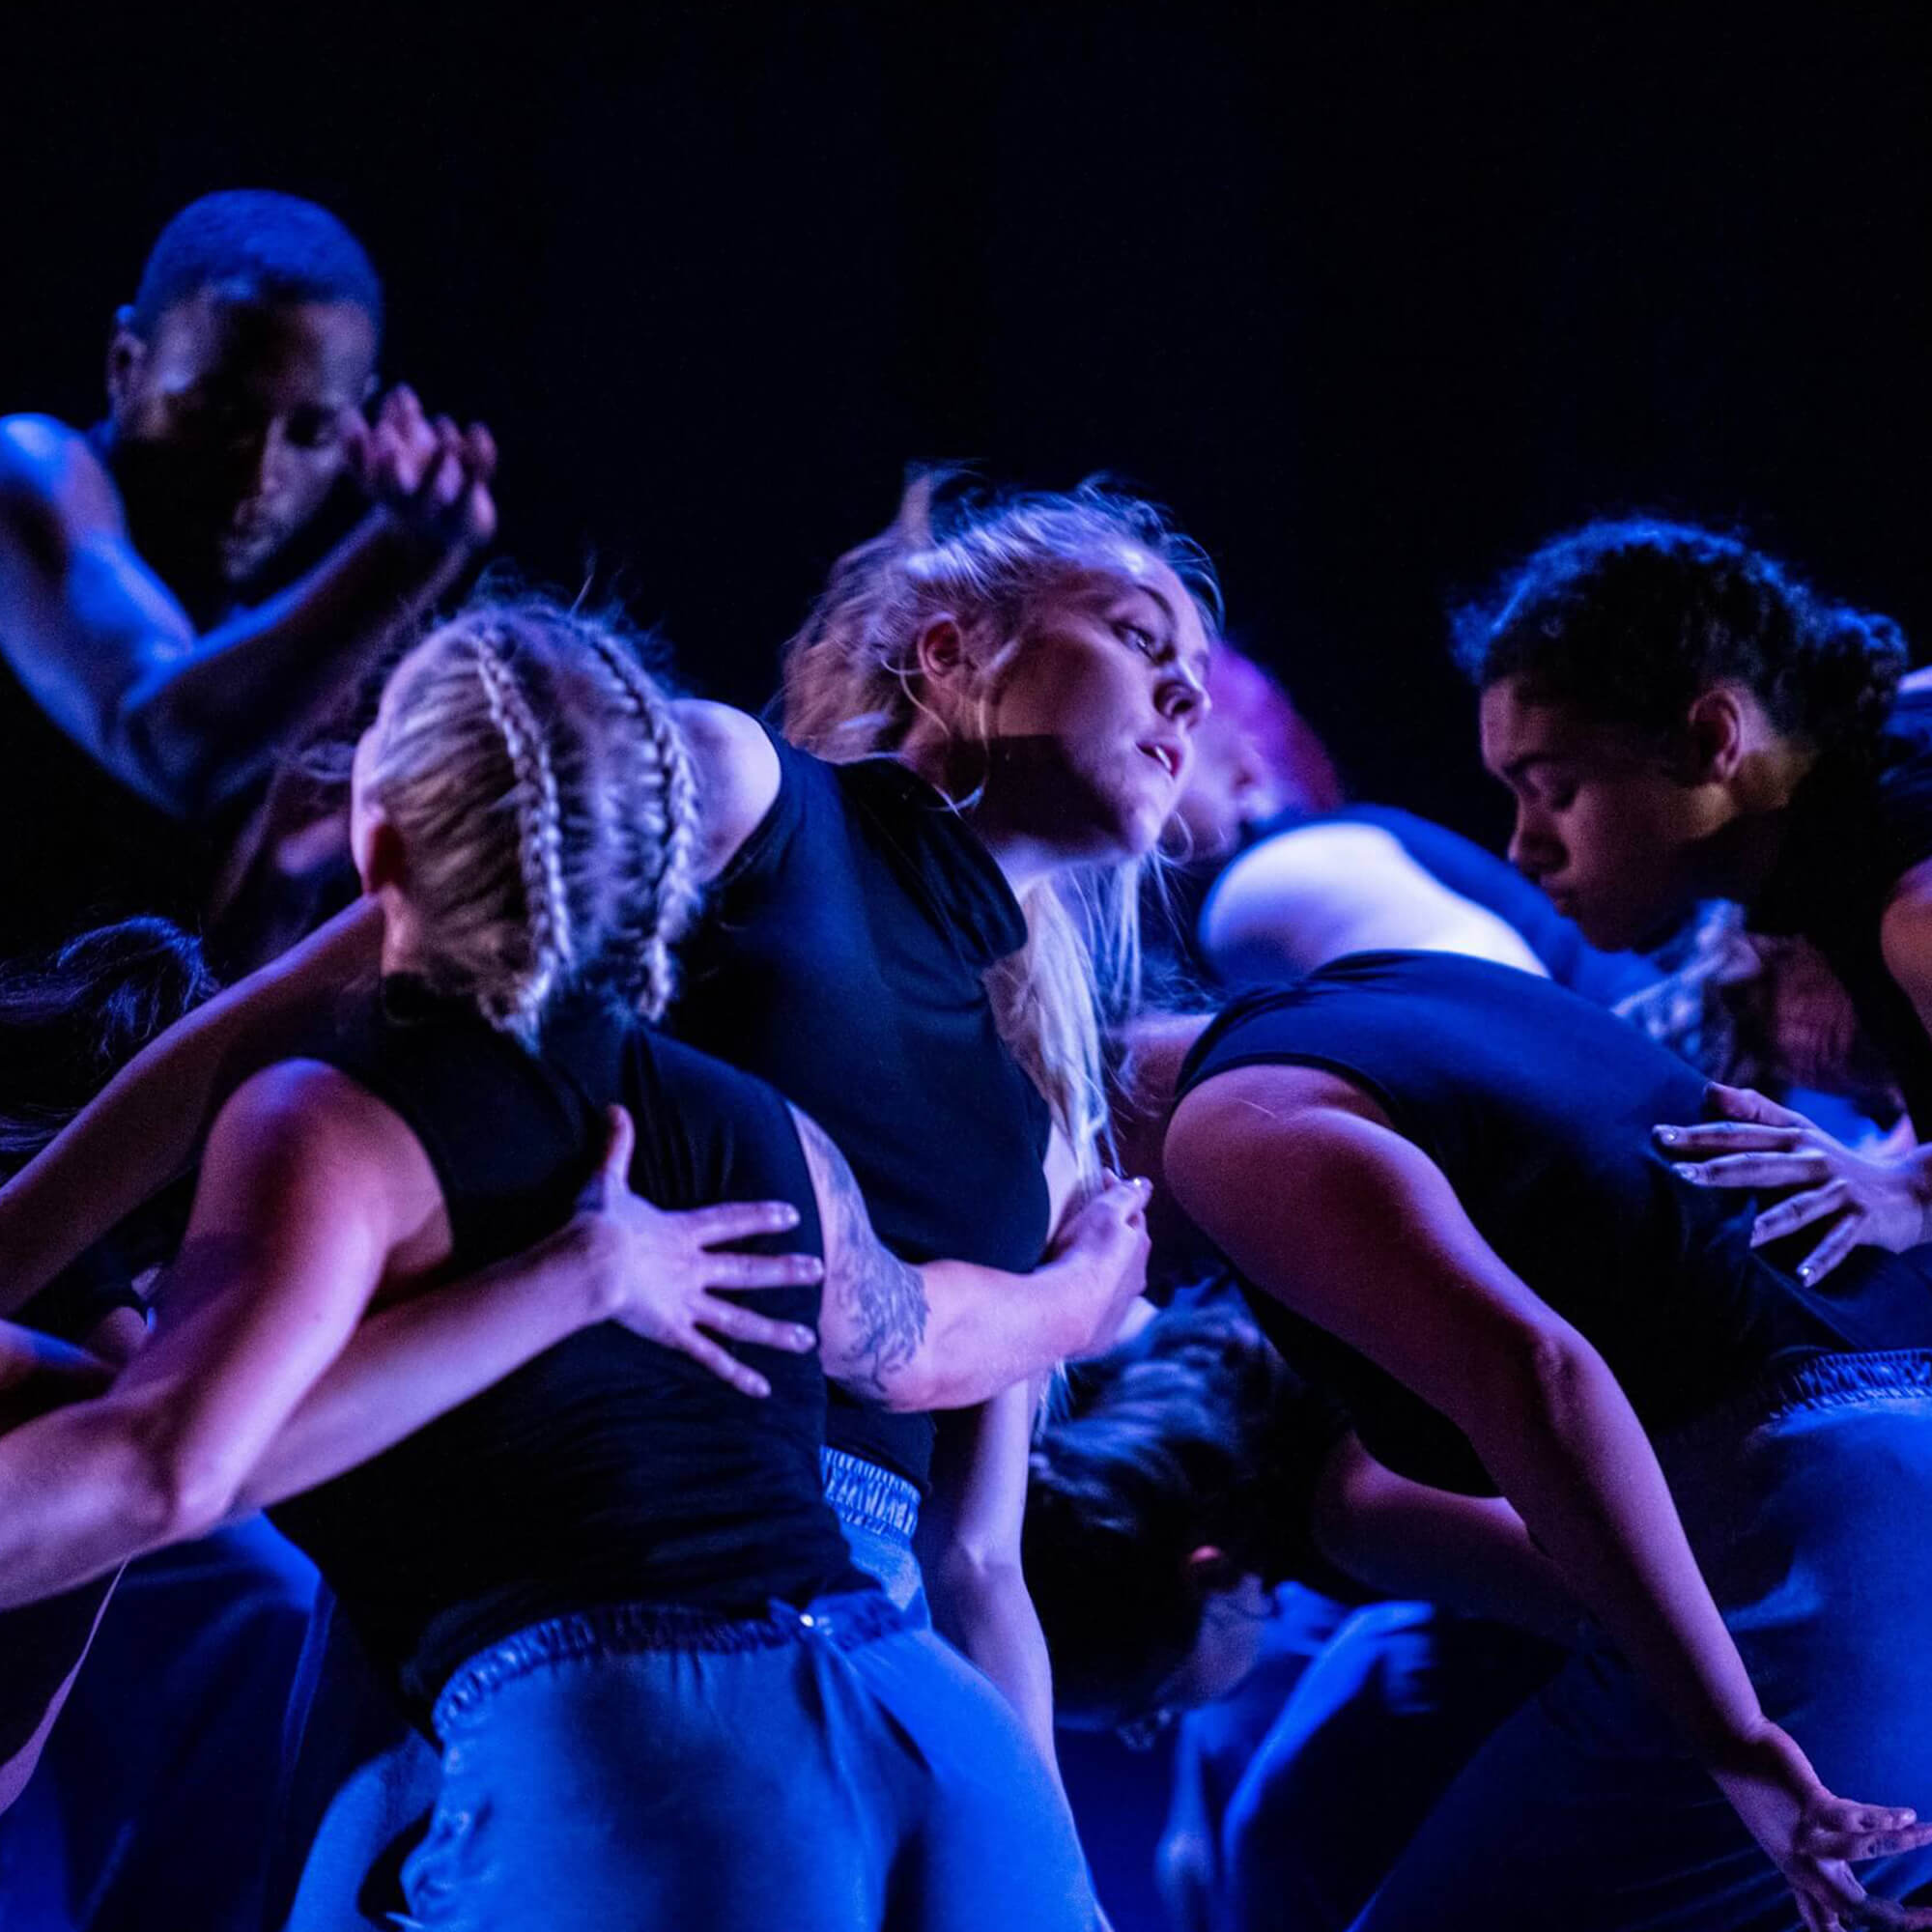 Group of dancers huddle closely in a dark theatre environment